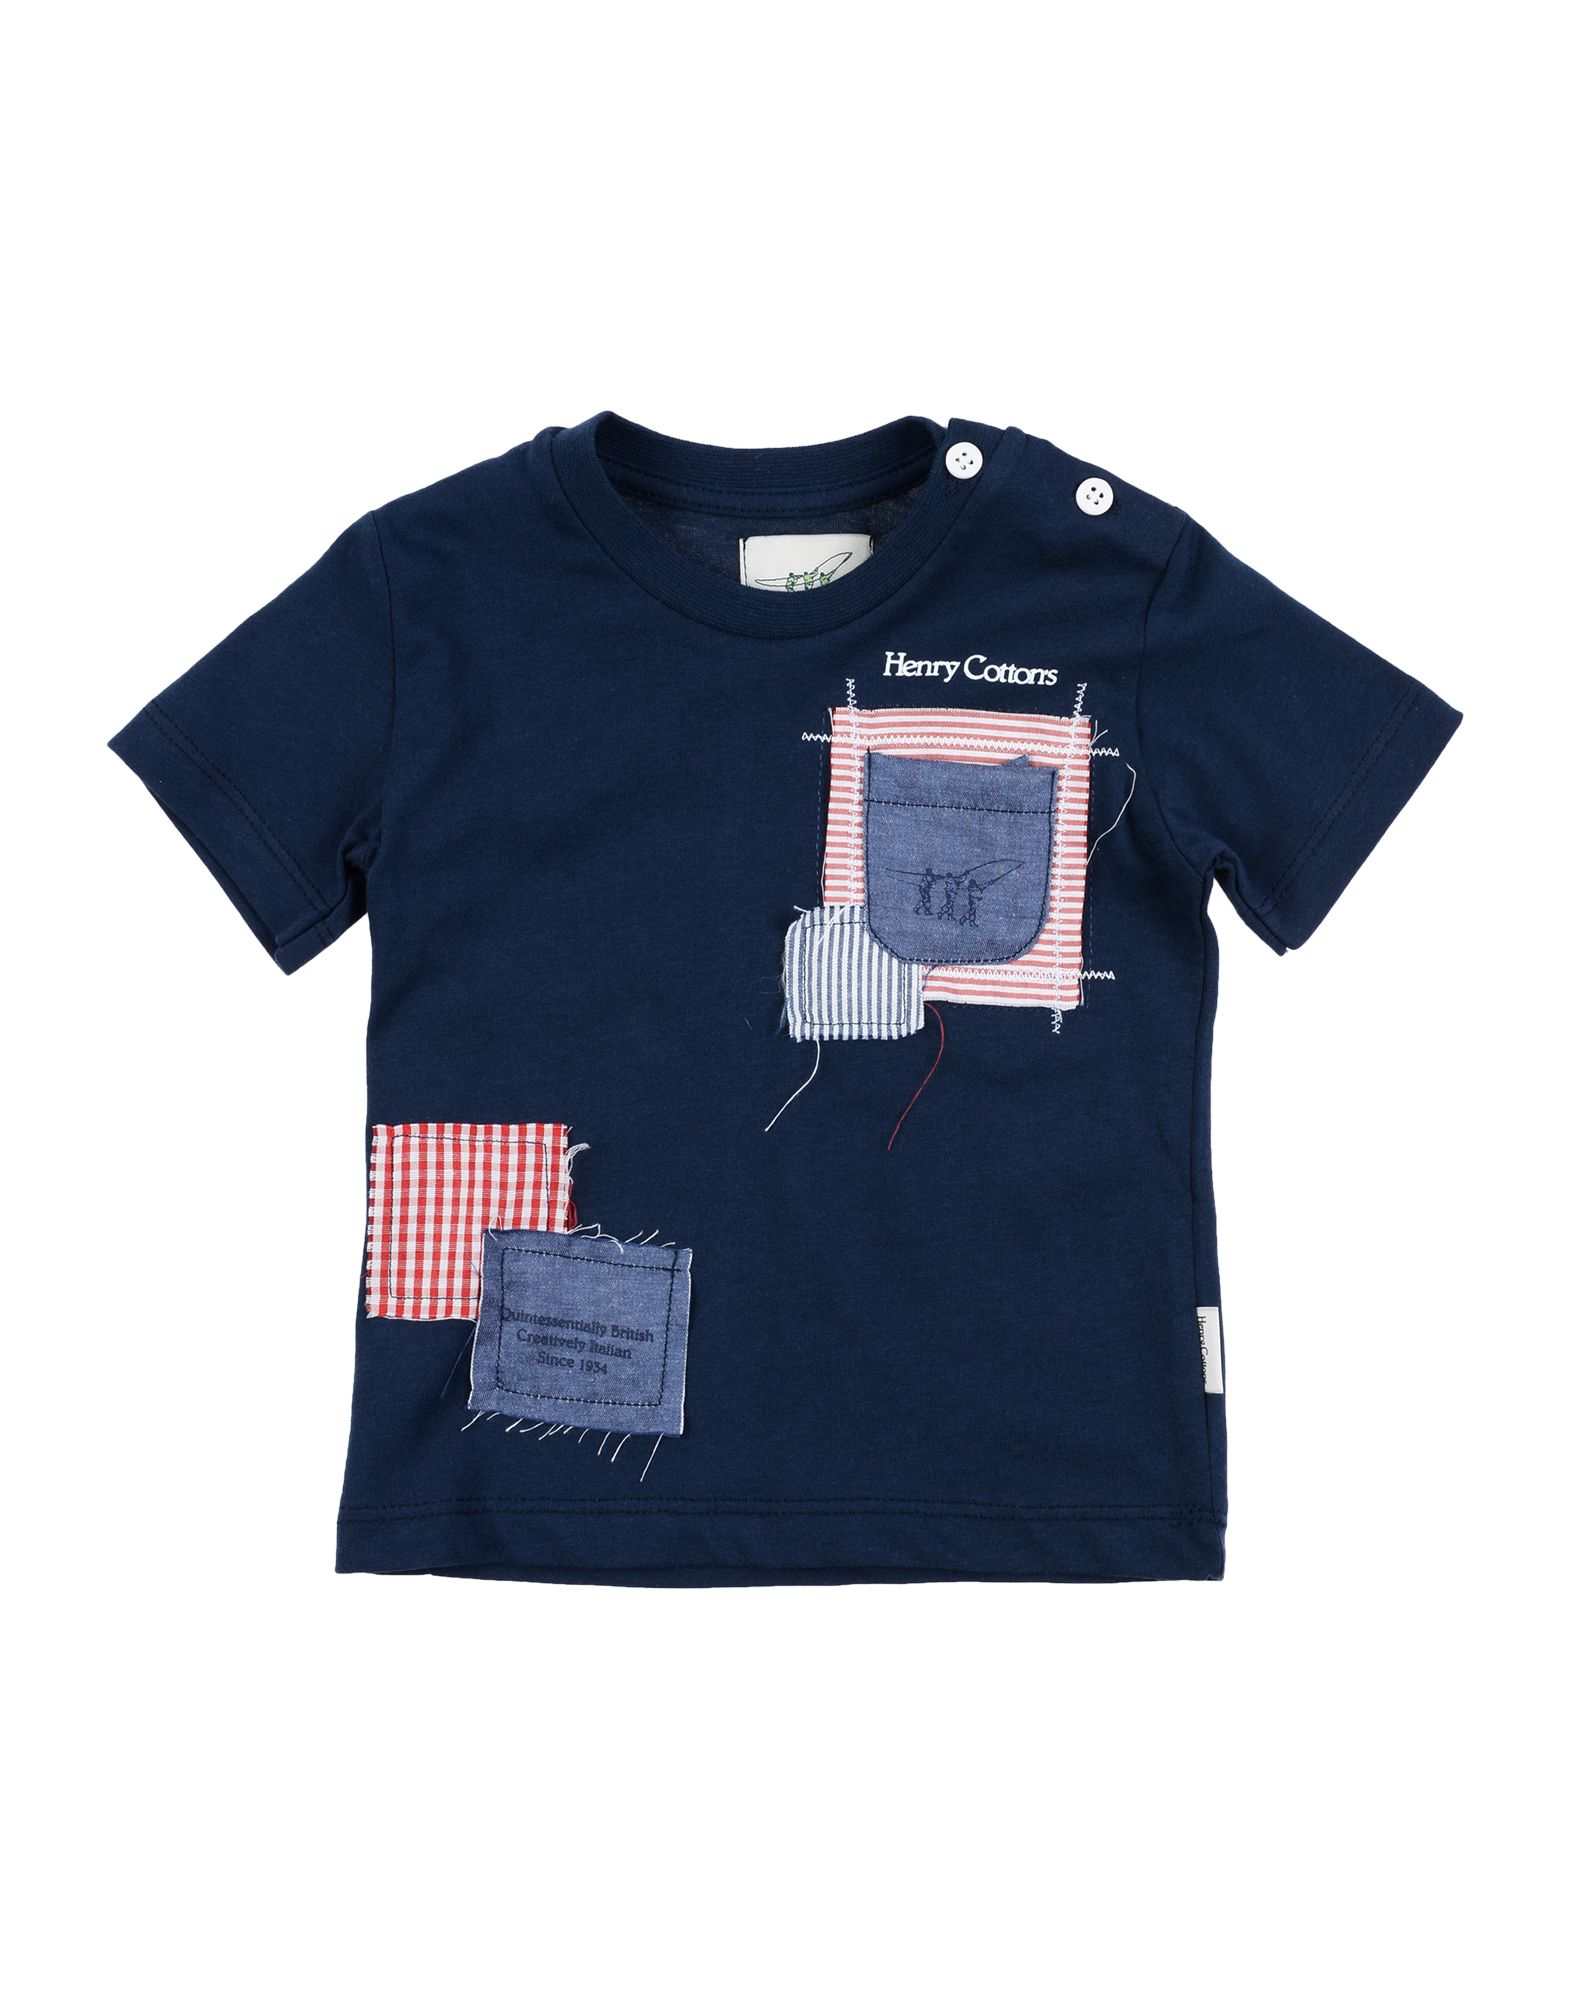 Henry Cotton's Kids' T-shirts In Blue